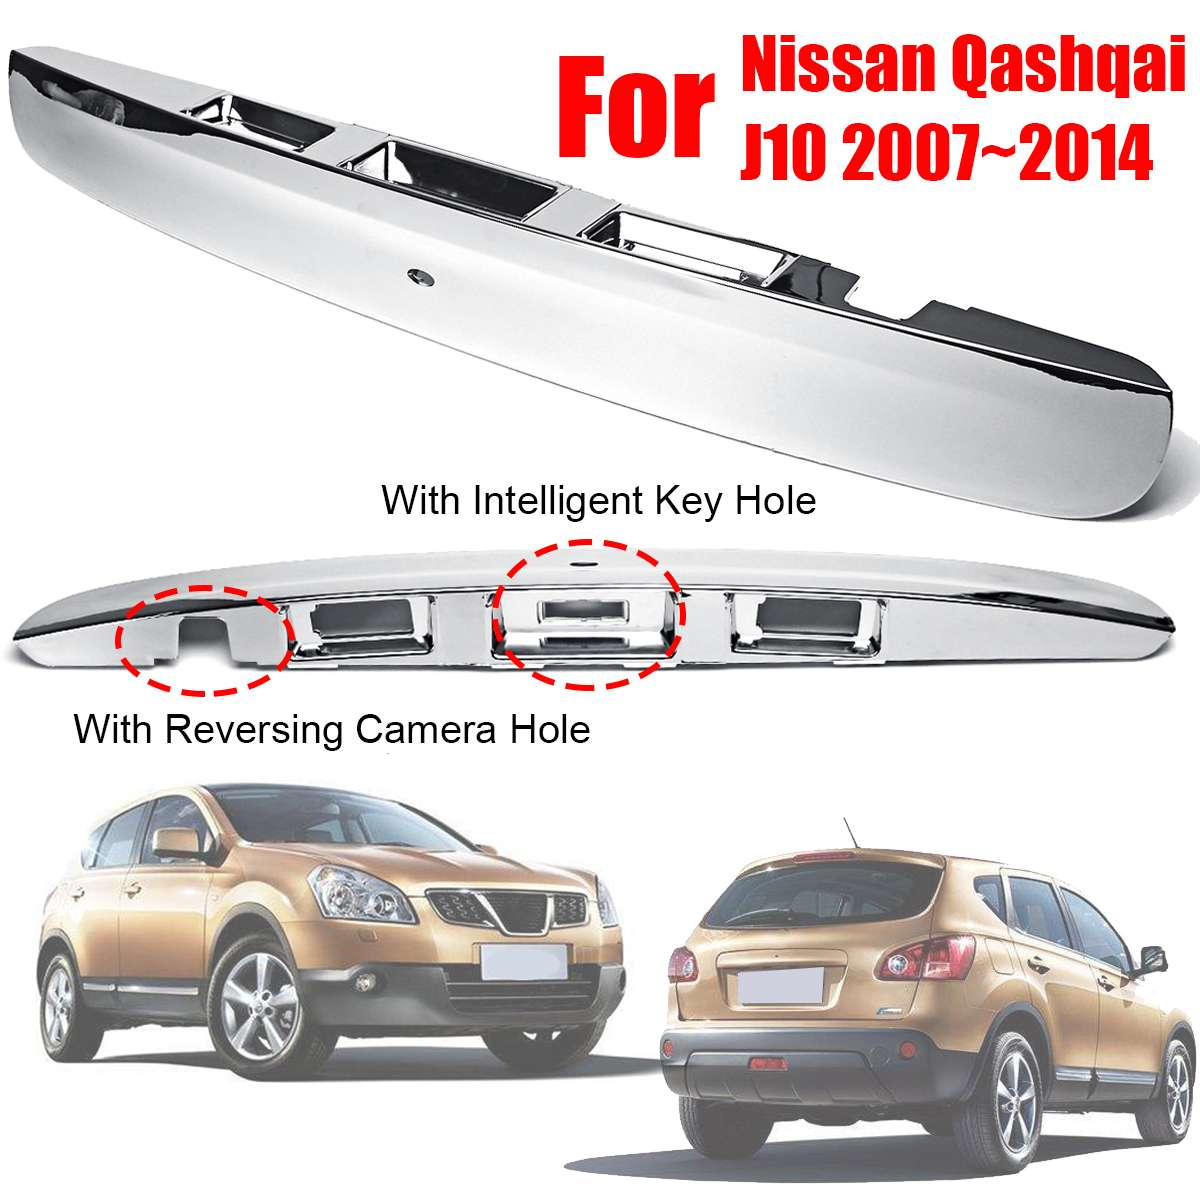 No Keyhole, No Backup Camera, Replaces 20927958, 22755303, 23158822 APDTY 140171 Tailgate Cable Latch Rod Handle /& Trim Bezel Without Keyhole Fits 2007-2013 Silverado or Sierra 2500 or 3500 Trucks